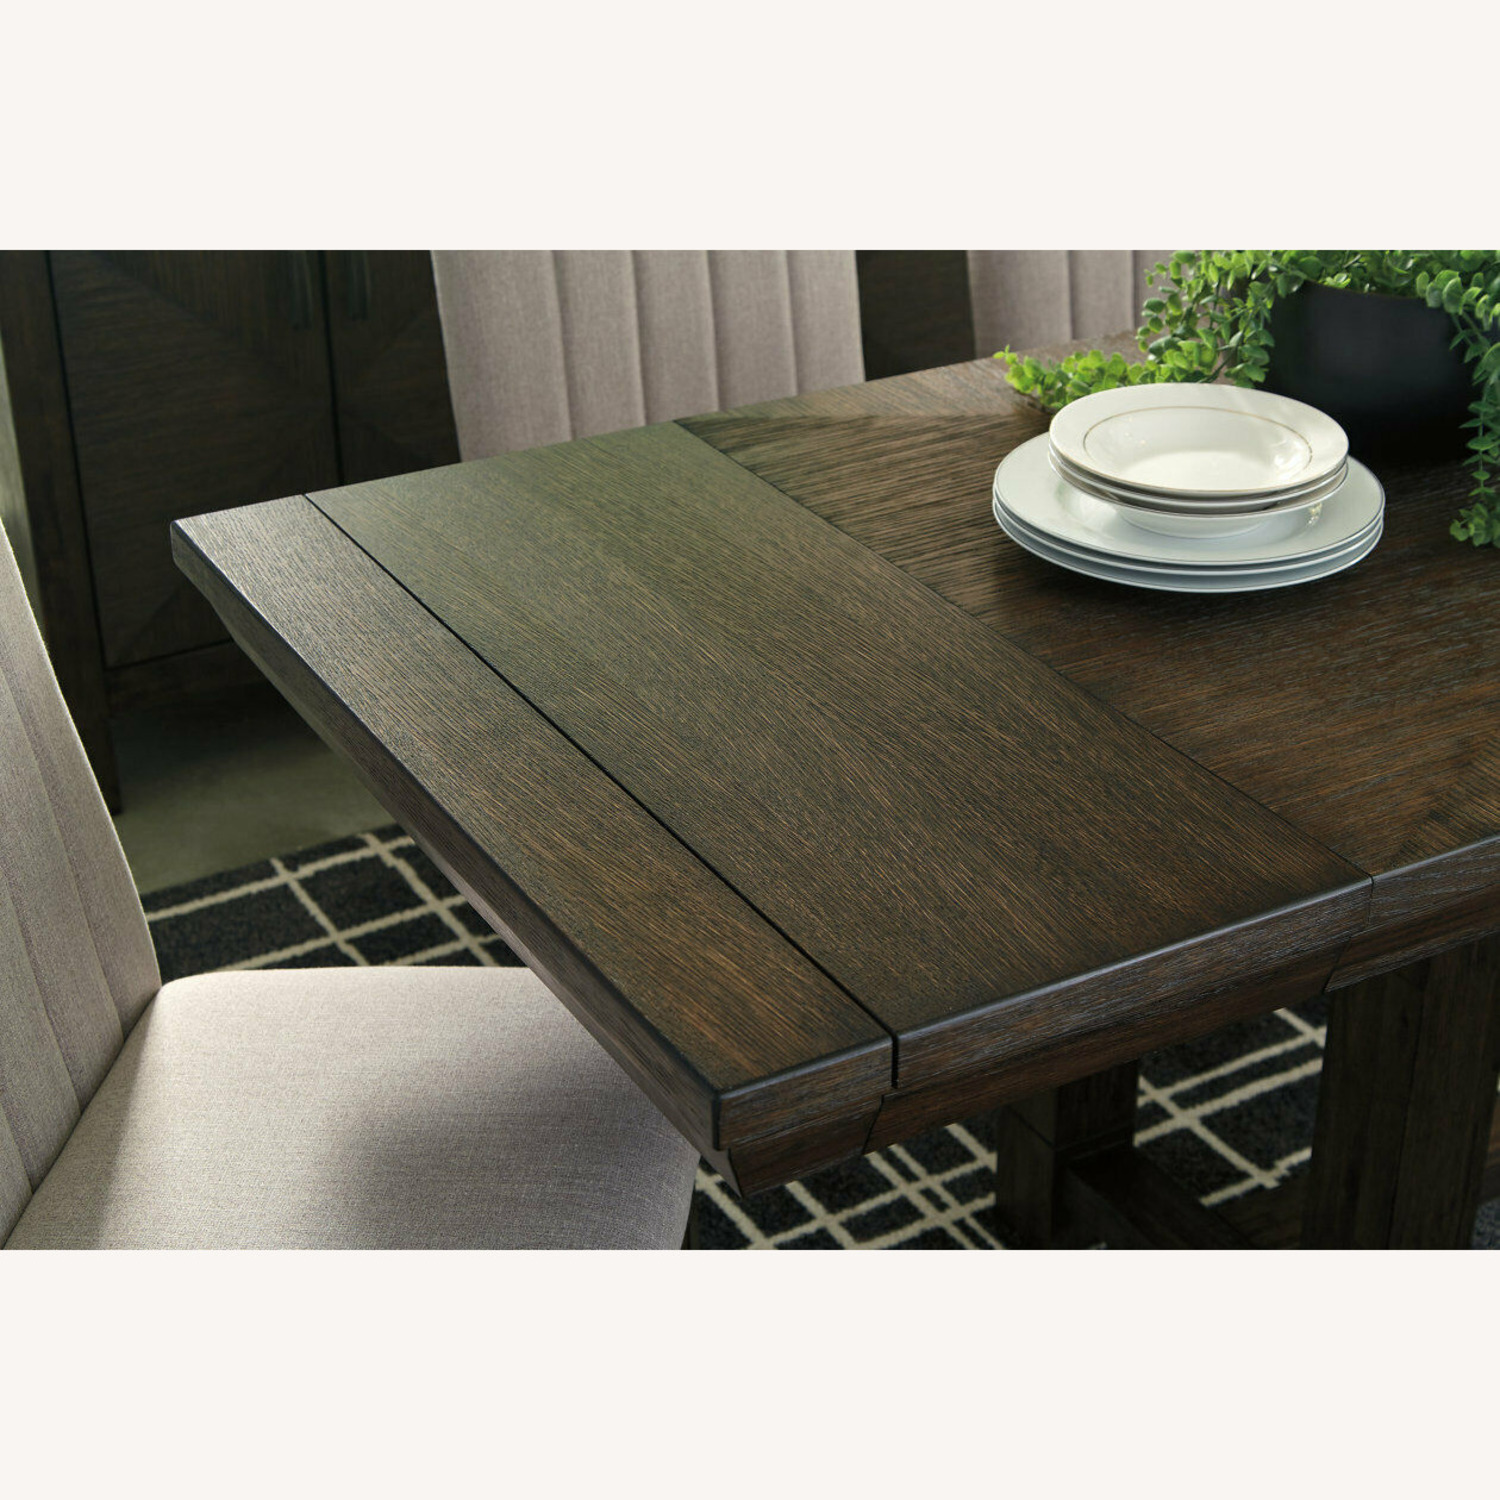 Ashley Furniture Dellbeck Extendable Dining Table - image-8